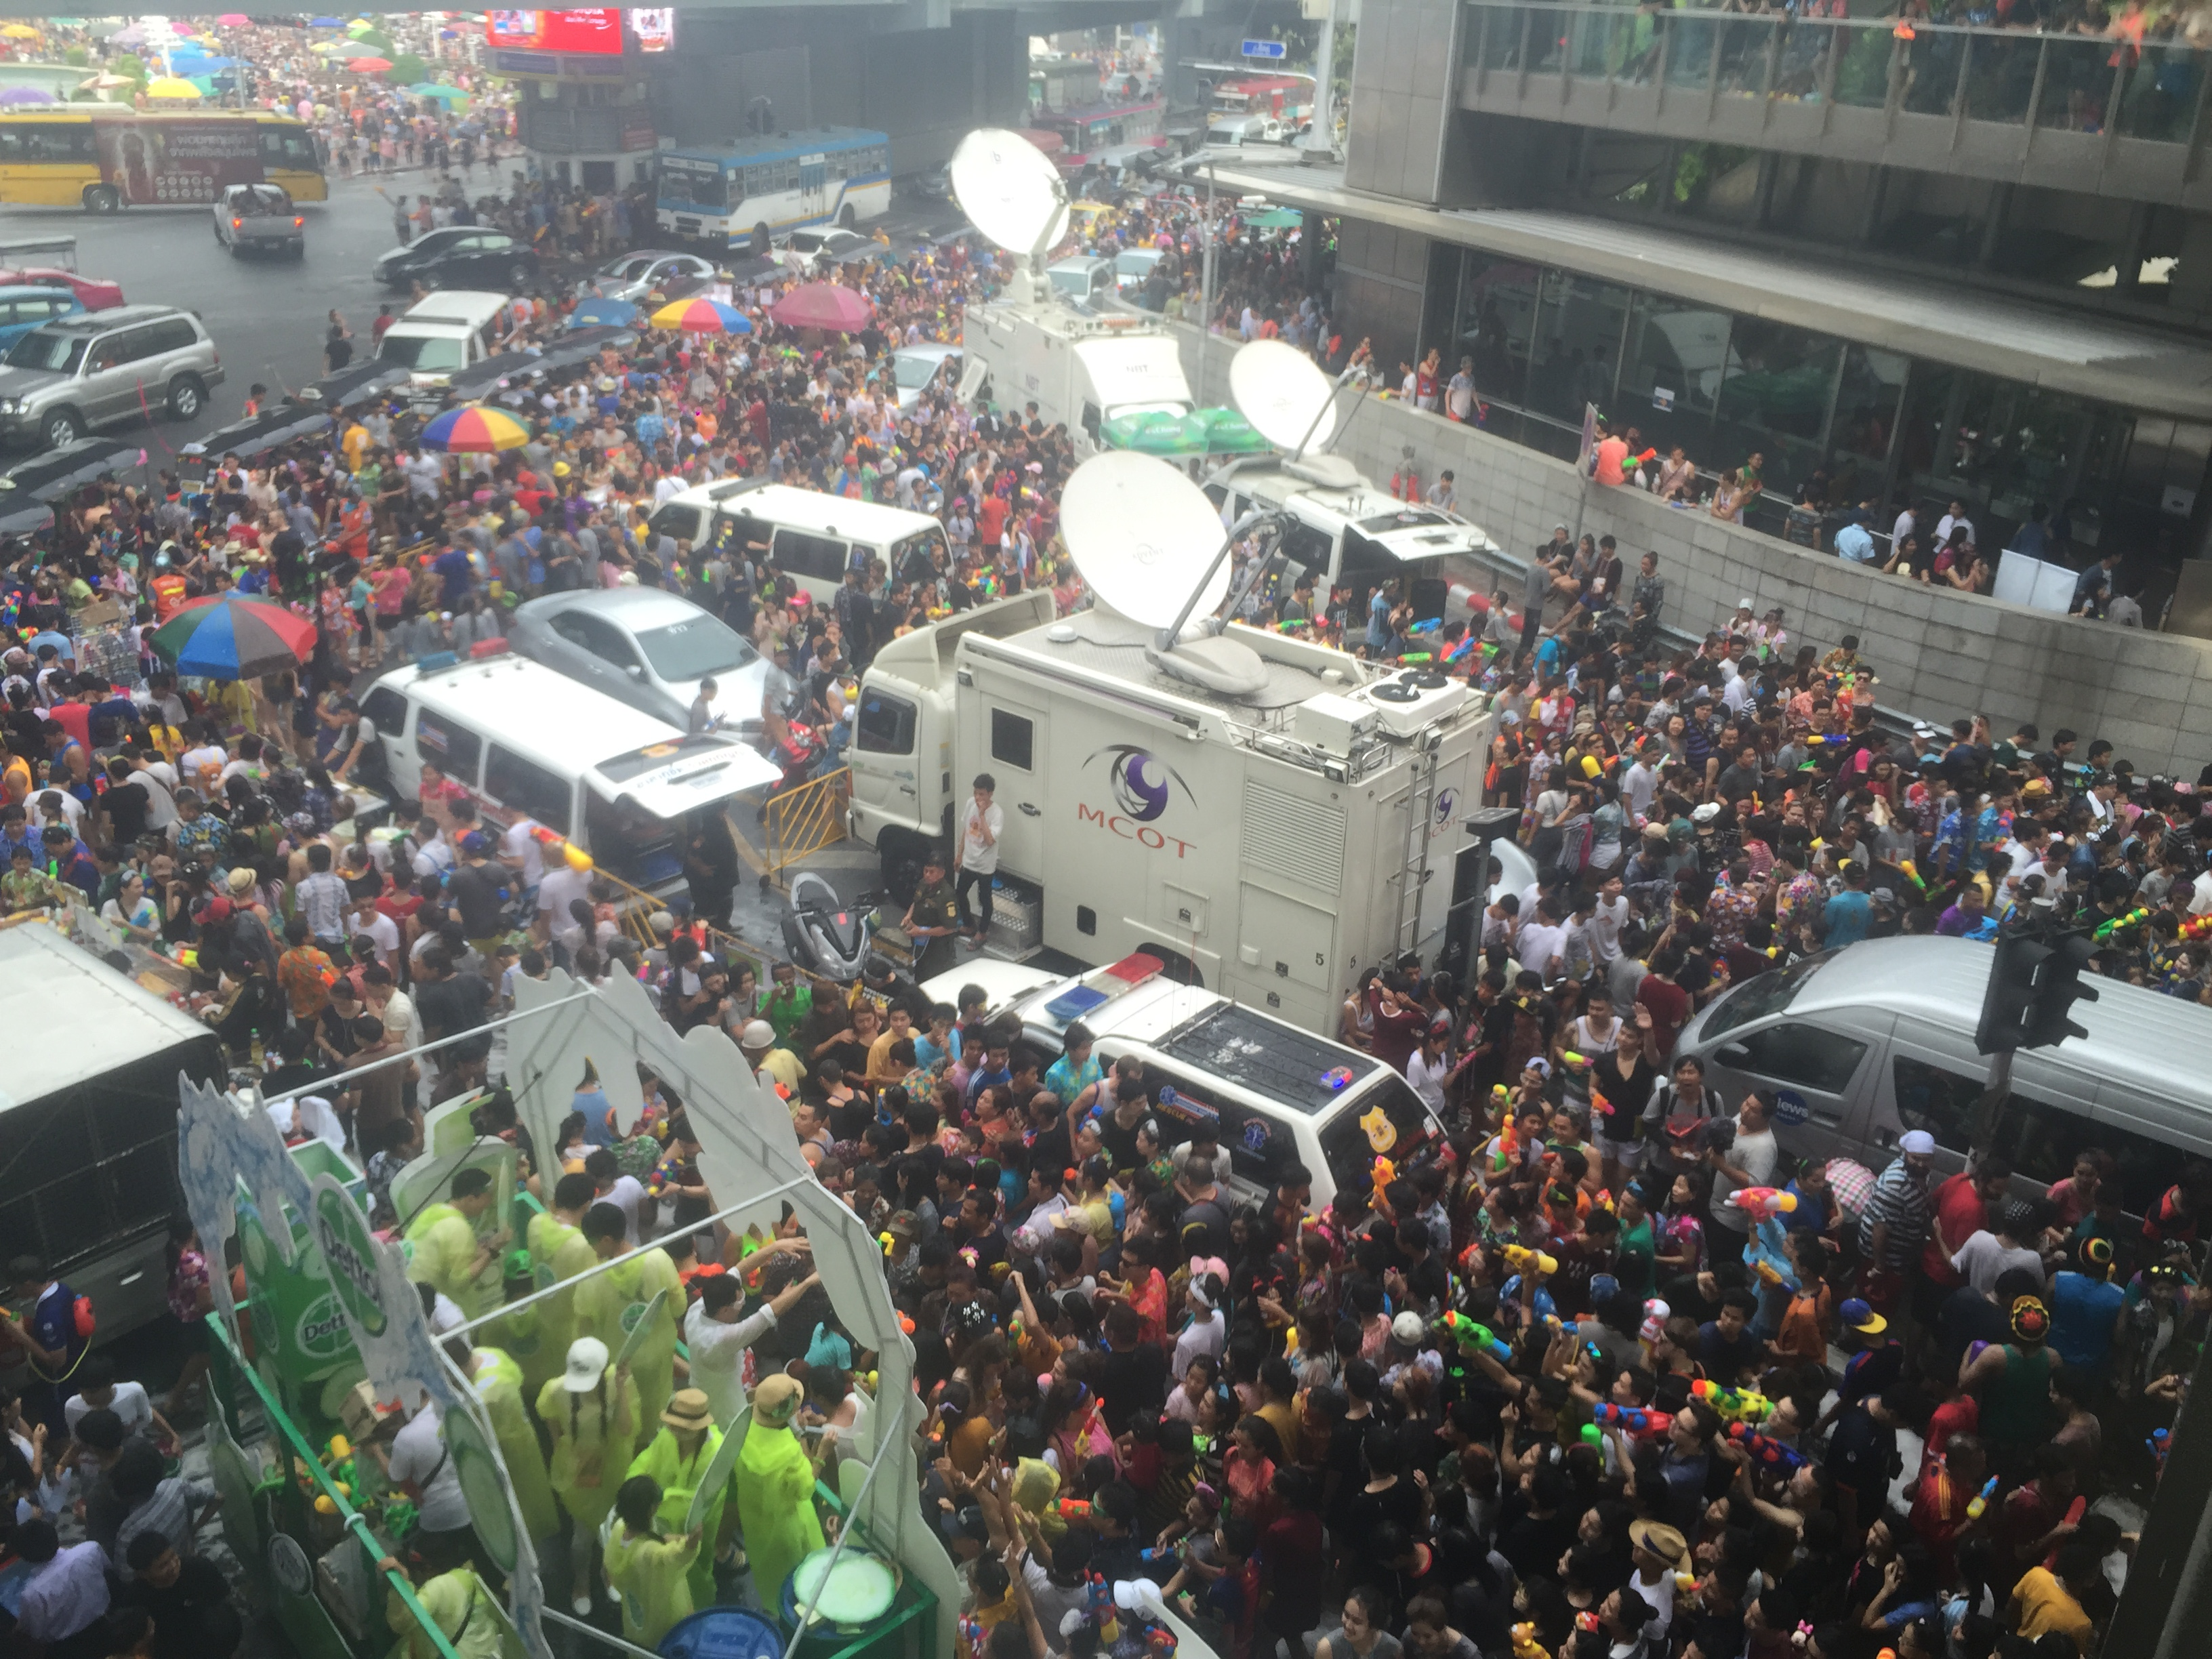 I think the intense media coverage of Songkran in Thailand actually promotes the violence that has become a part of the festival in the past few years. Photo taken on April 13, 2015.